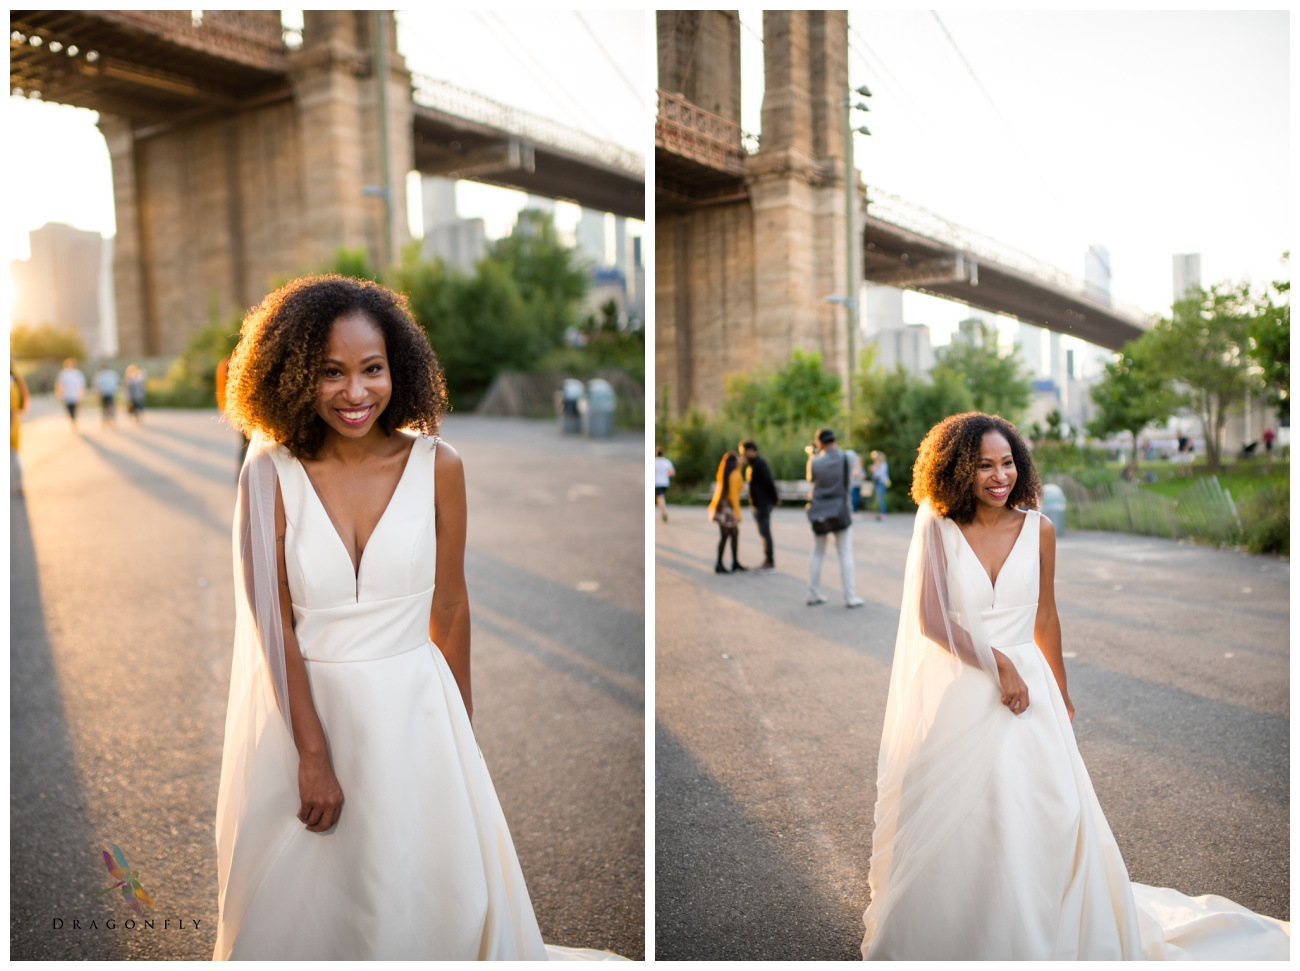 Dumbo Brooklyn New York Wedding Elopement Photo_0017.jpg